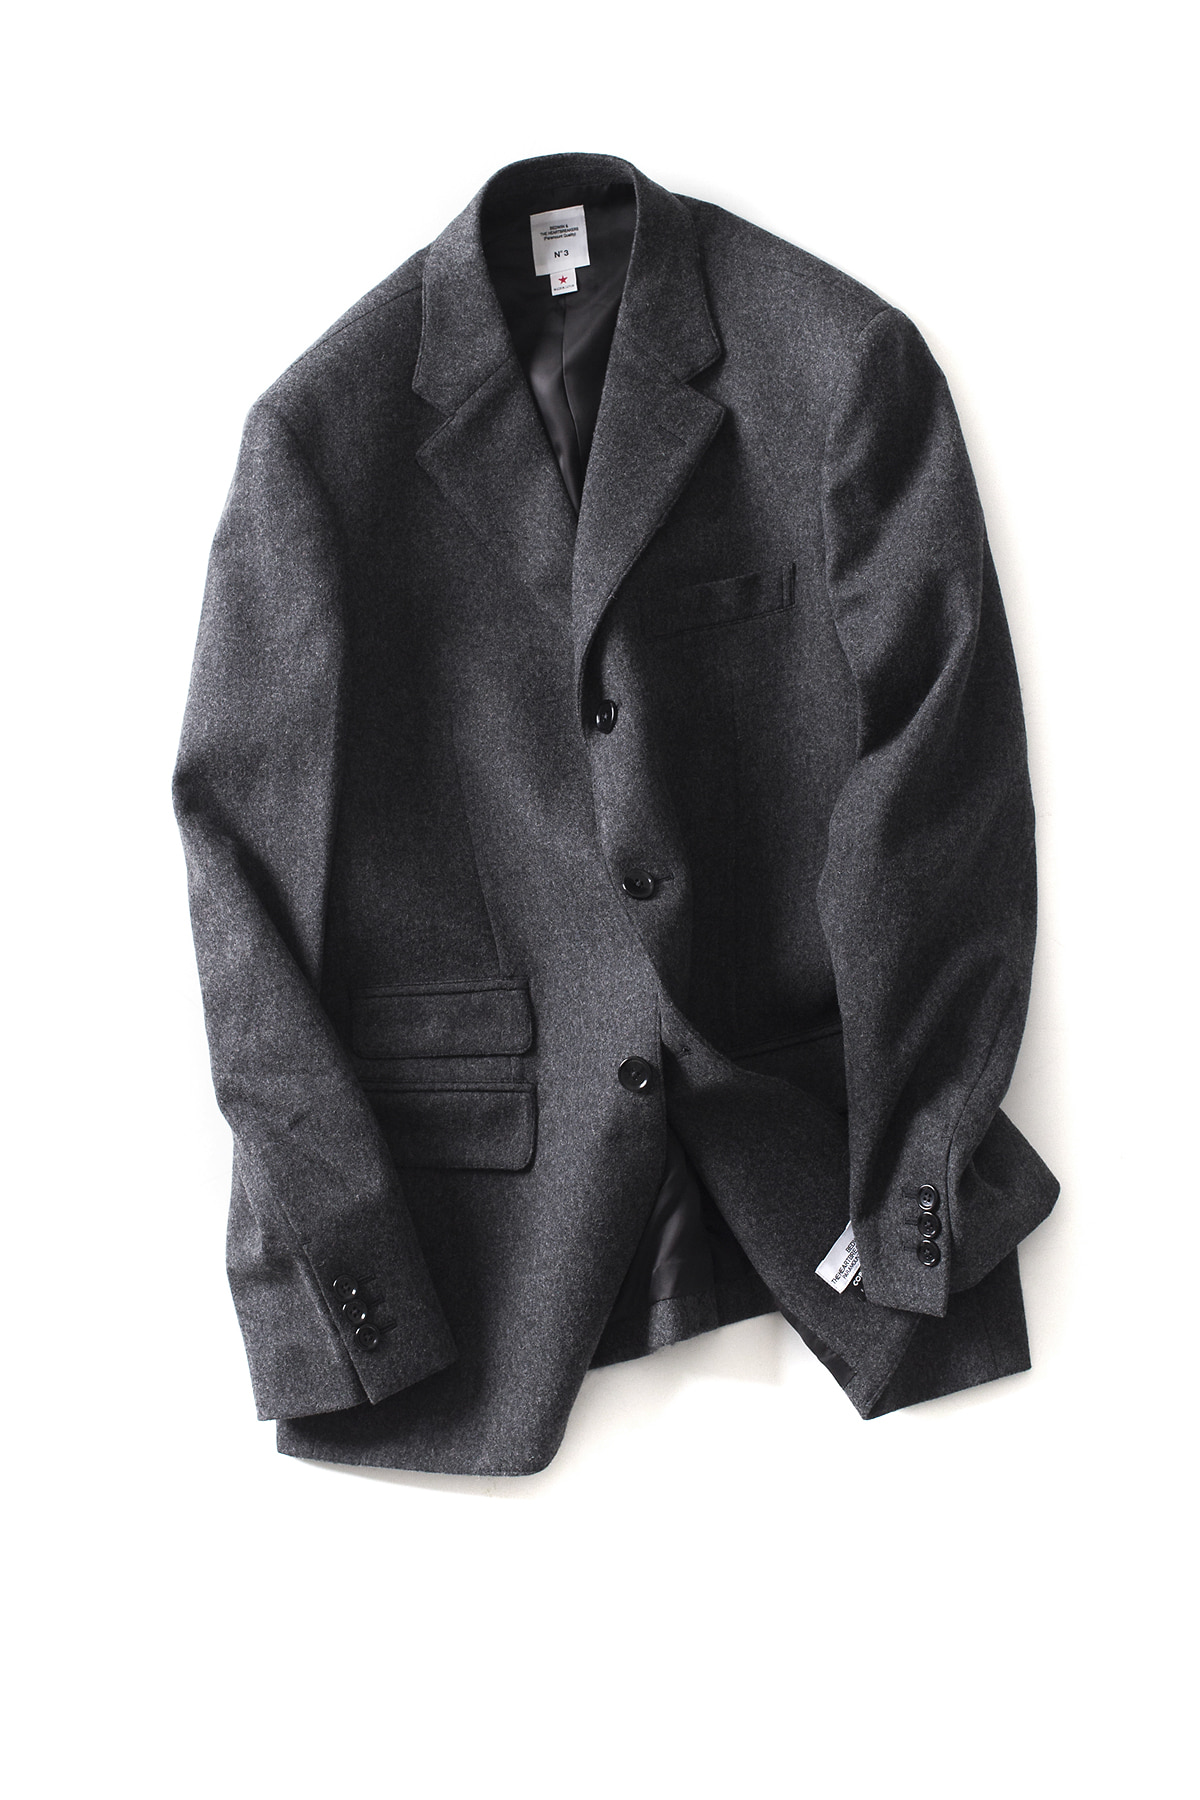 "Bedwin & The Heartbreakers : 3B Wool Taylor Jacket ""MICHAEL"" (Charcoal)"